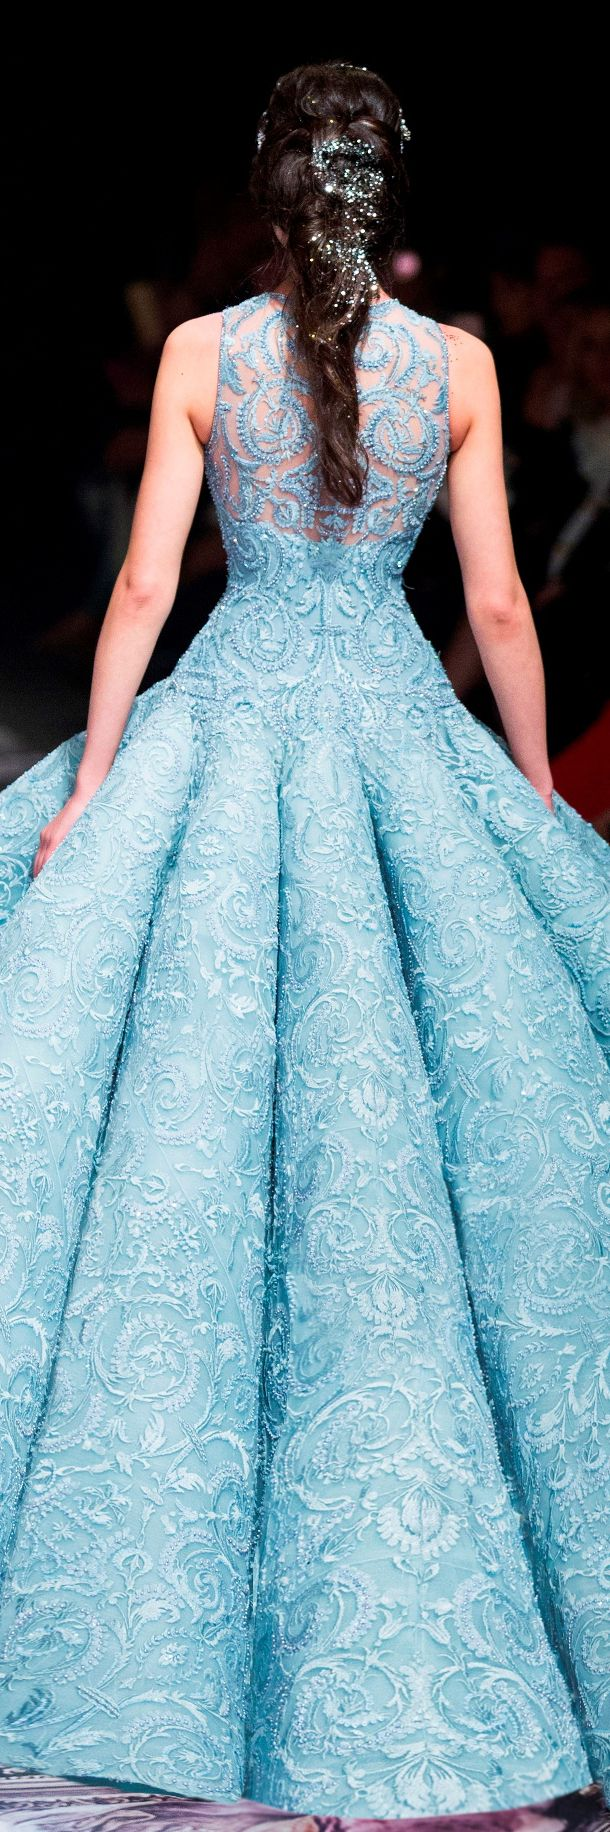 Michael cinco spring summer couture collection dresses